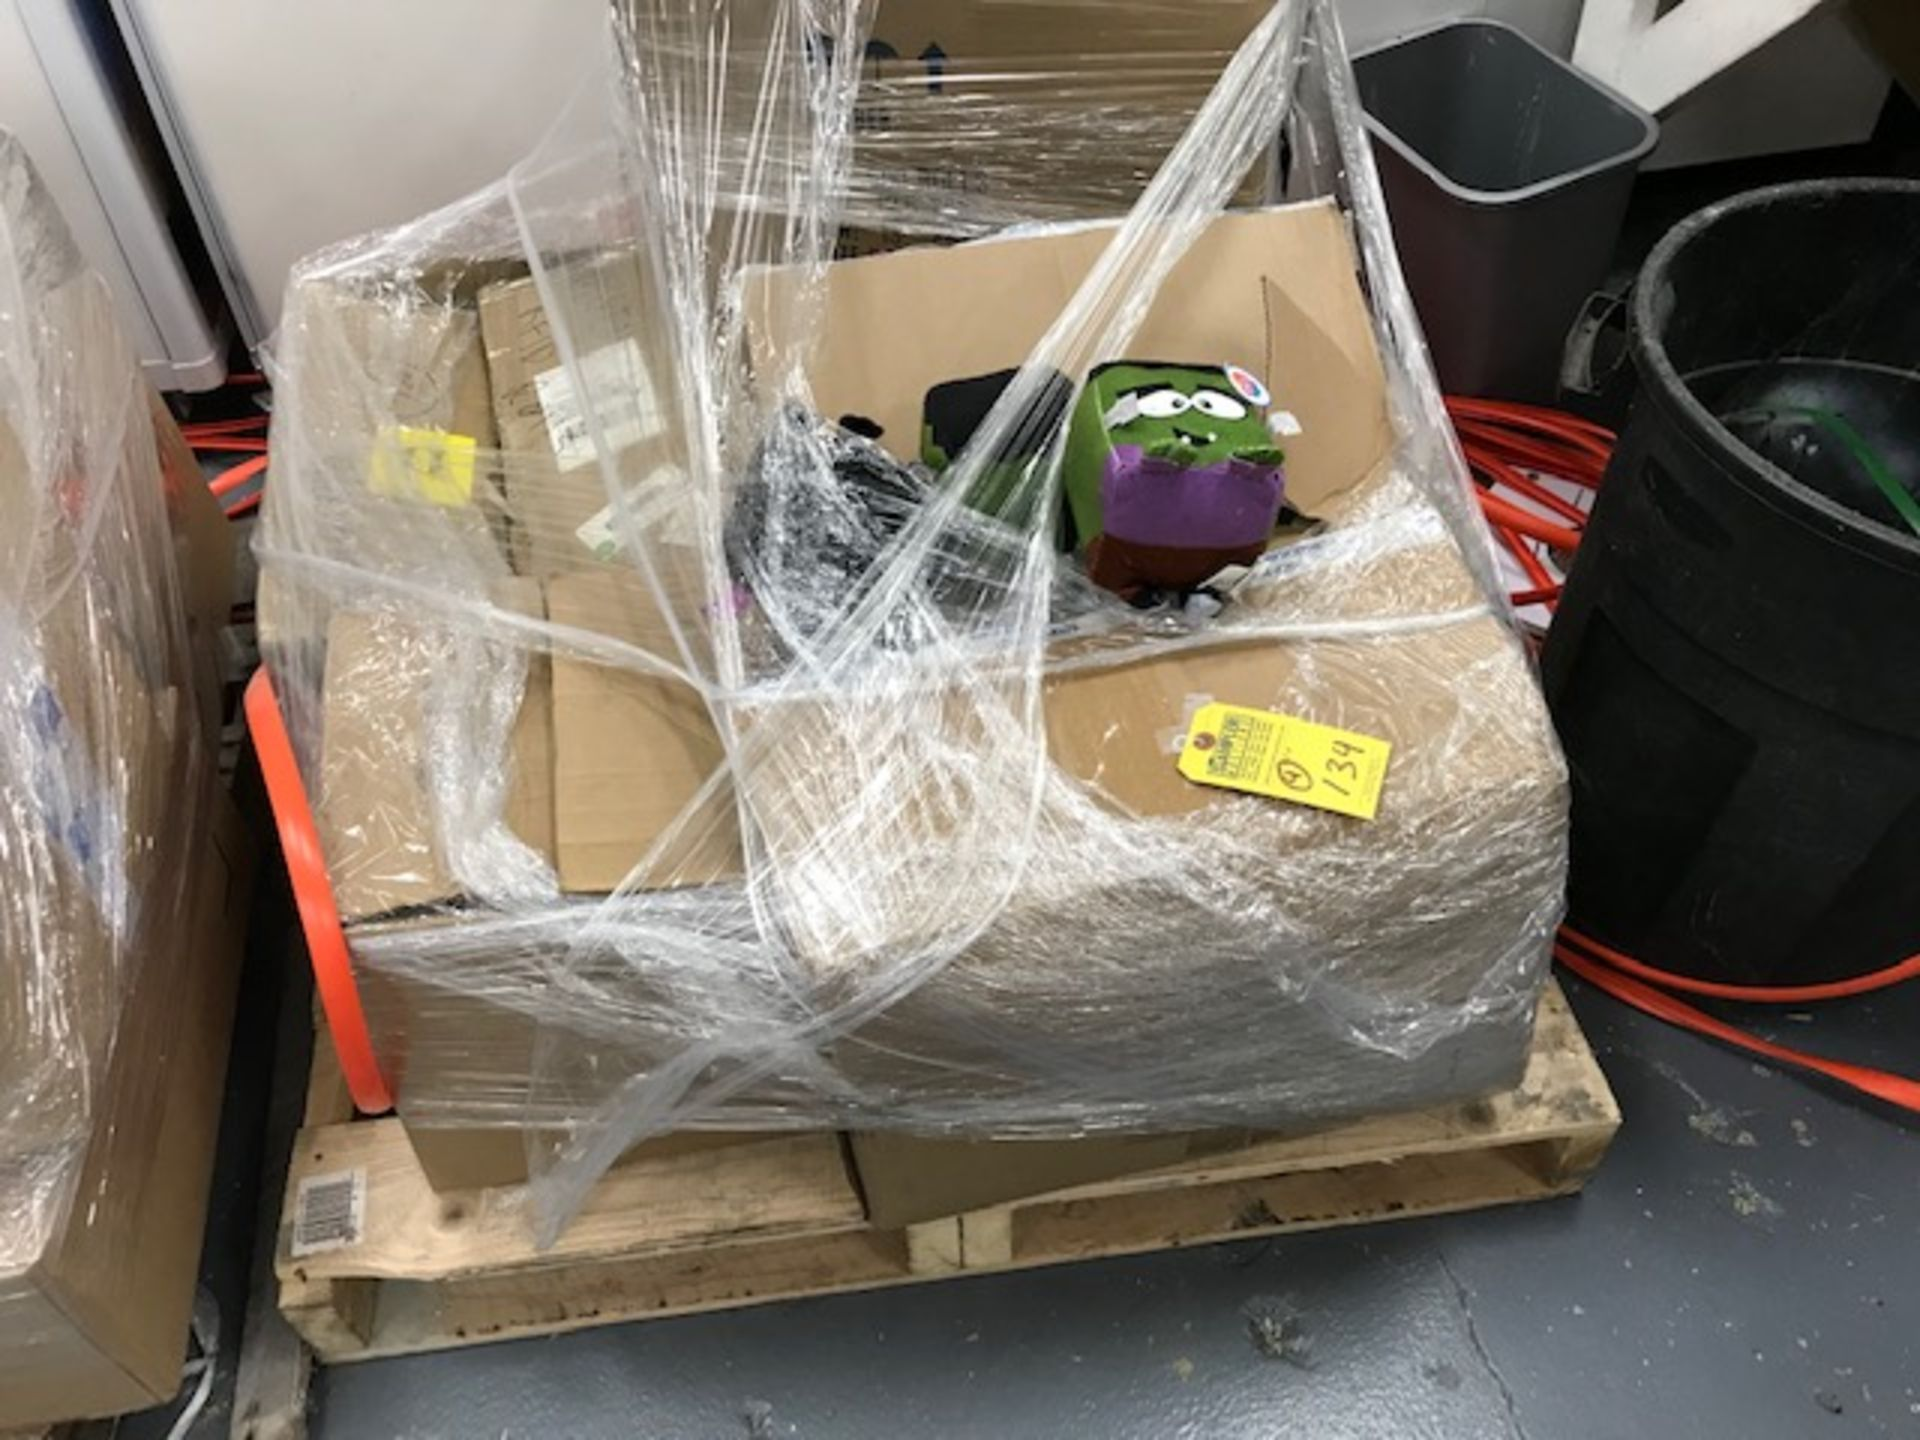 Lot 134 - BINS / SKIDS GAMES, TOYS, PARTS, ETC ***OUT OF SALE***